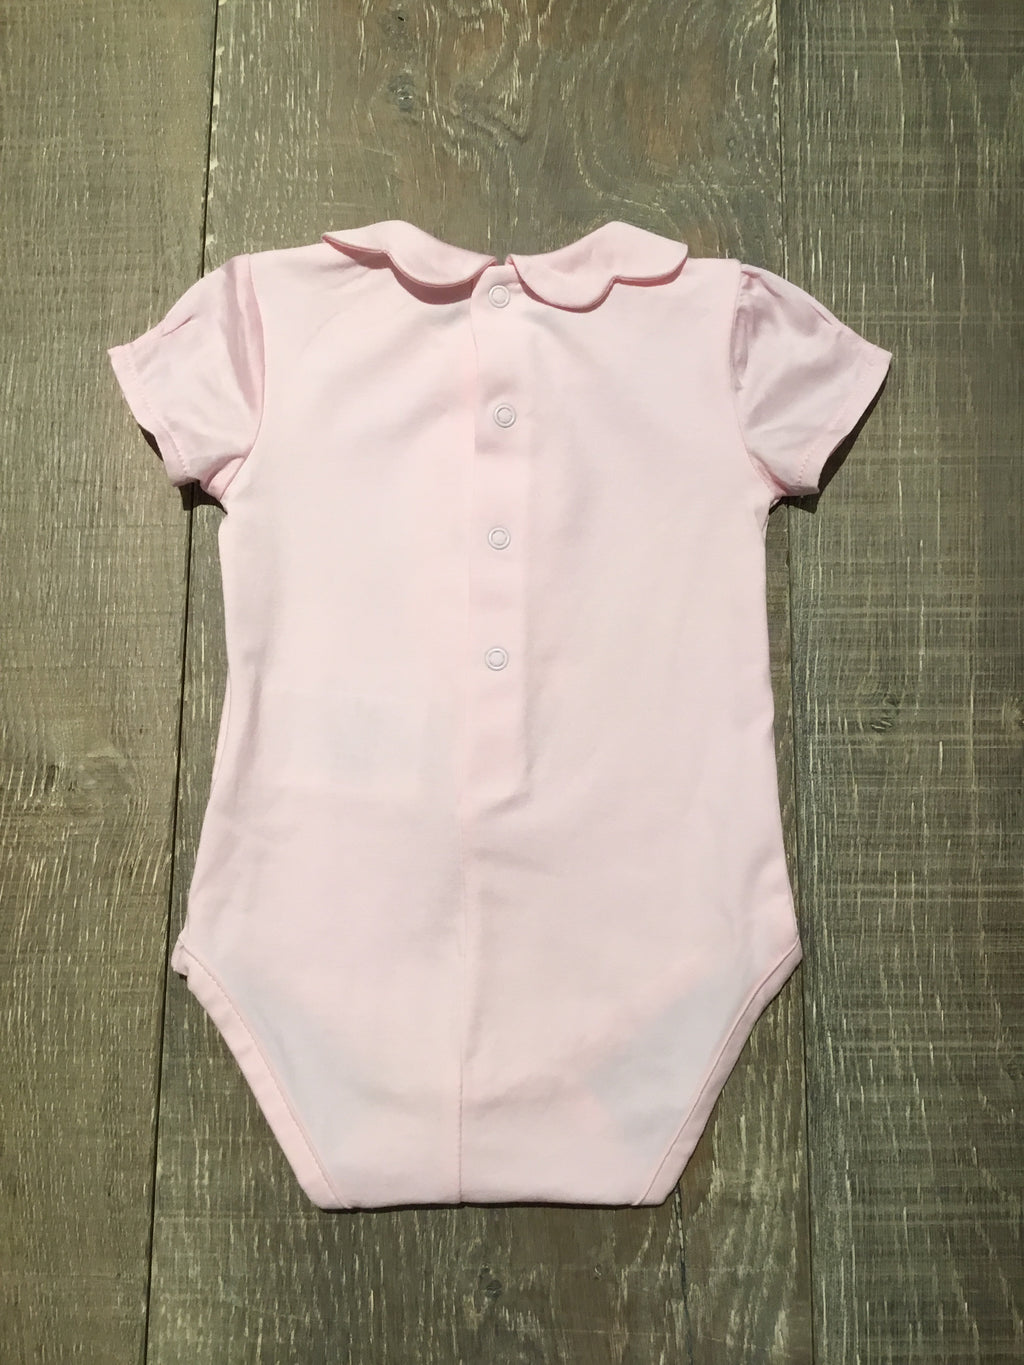 Pink Short Sleeve Onesie with Scalloped Collar